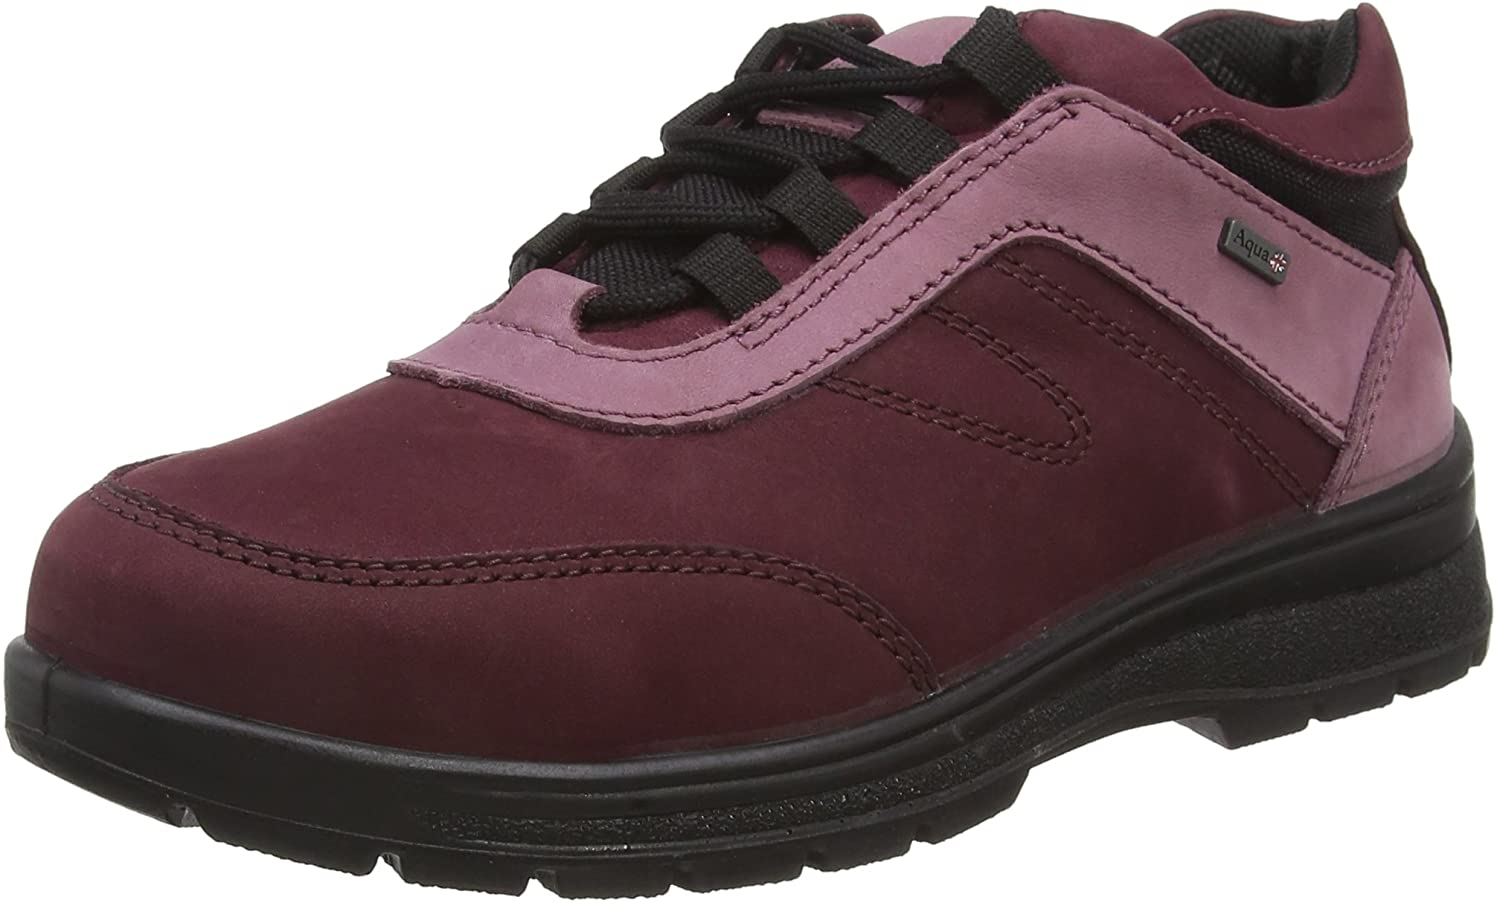 Padders Women's Jump Shoes